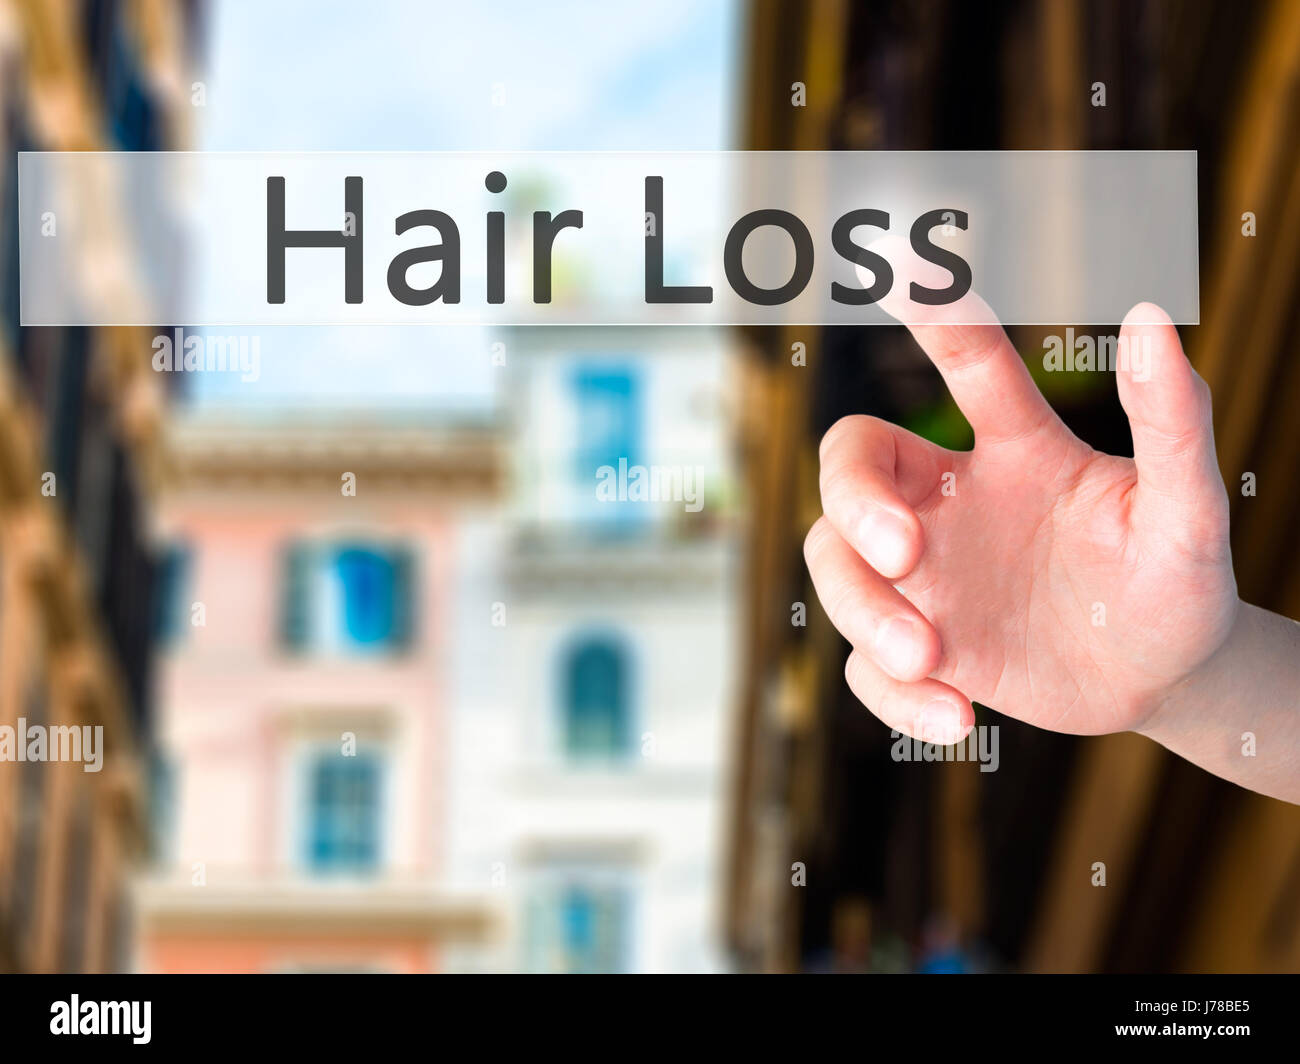 Hair Loss - Hand pressing a button on blurred background concept . Business, technology, internet concept. Stock Stock Photo